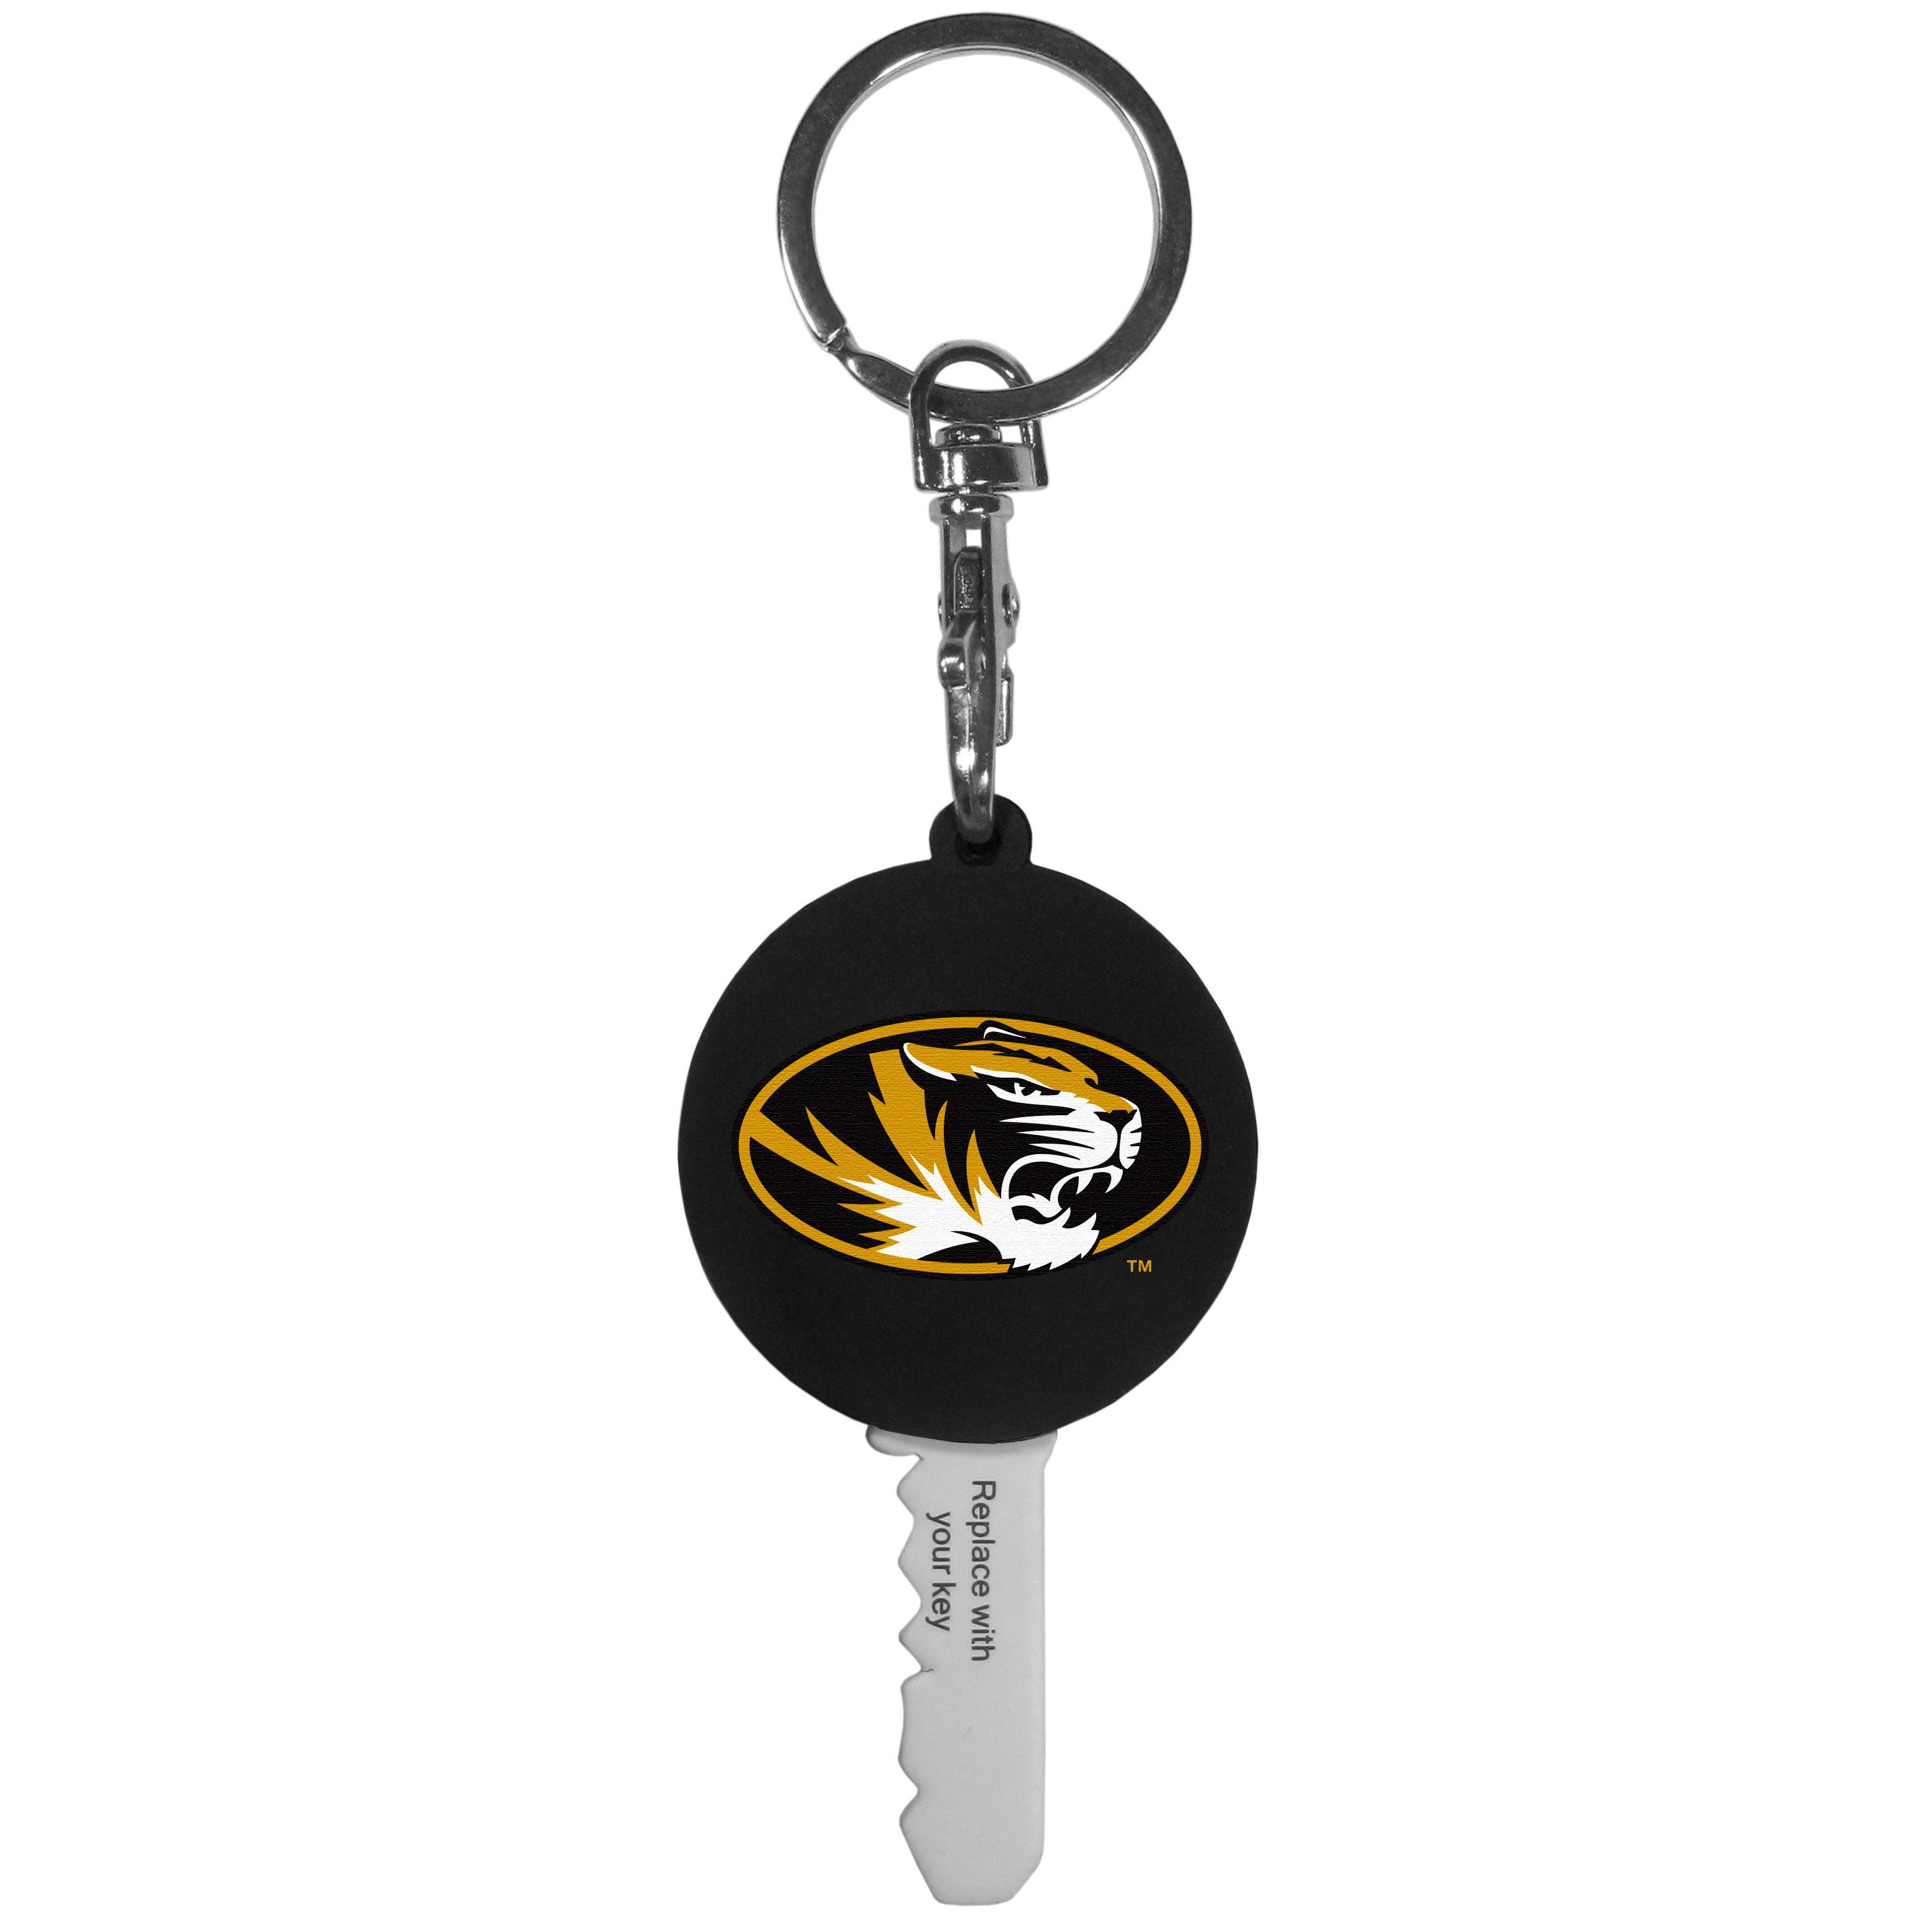 Missouri Tigers Mini Light Key Topper - This super handy little key topper has a built in mini light that illuminates the lock so you do not have to fumble in the dark trying to open your door. You slide your house key into the top of the rubber key topper and your ready to go. The topper features a Missouri Tigers logo on the front of the topper.